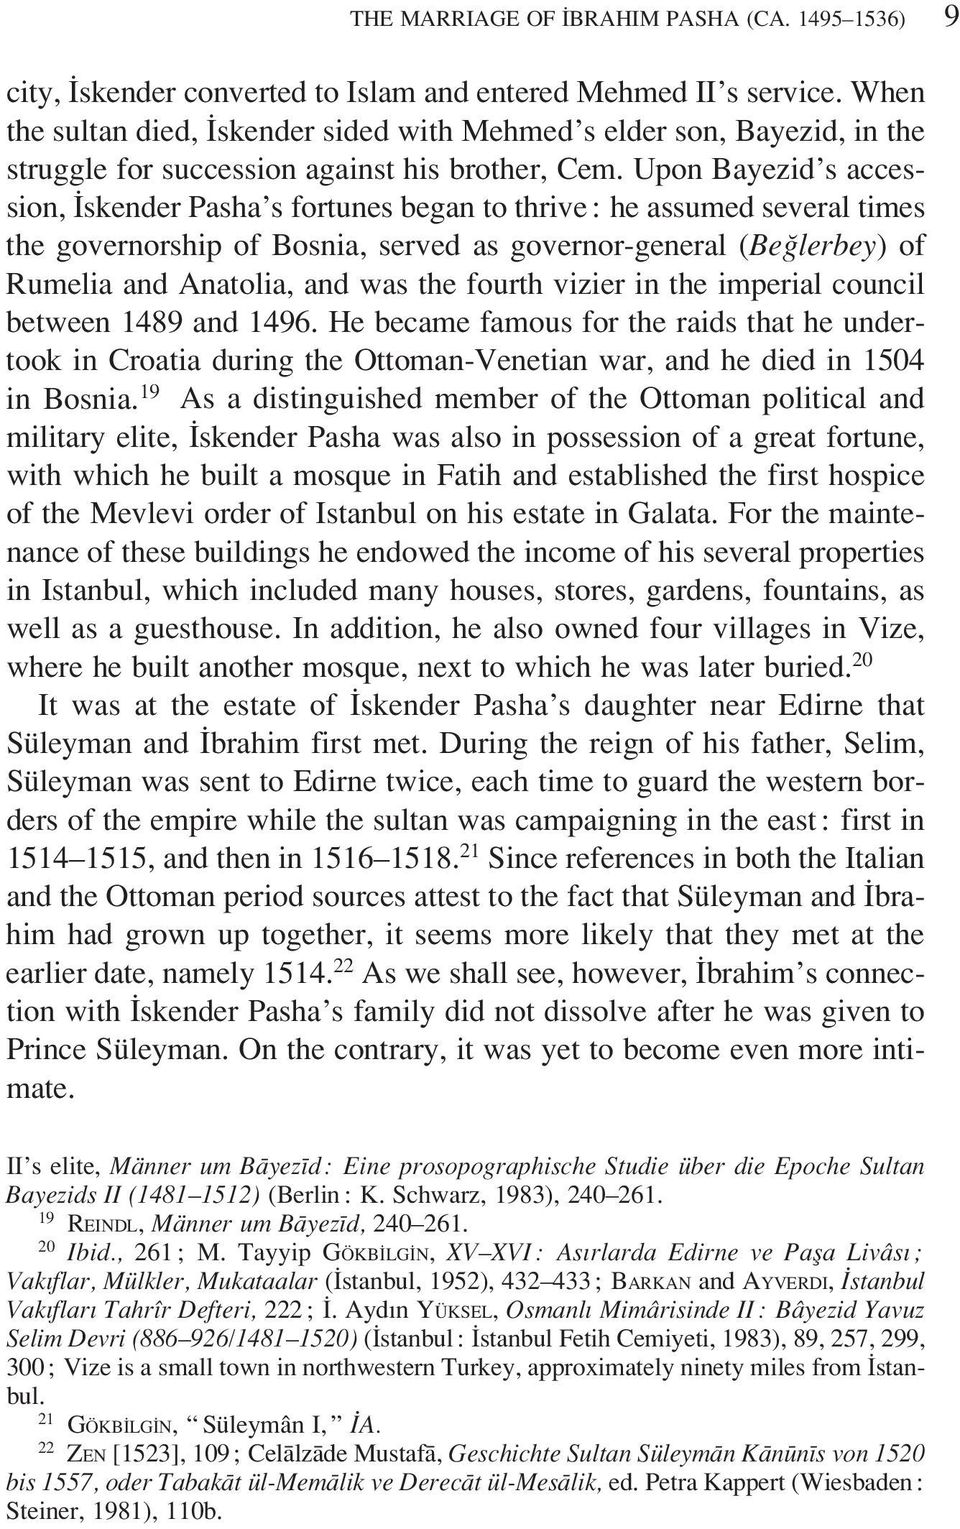 Upon Bayezid s accession, Iskender Pasha s fortunes began to thrive : he assumed several times the governorship of Bosnia, served as governor-general (Beglerbey) of Rumelia and Anatolia, and was the